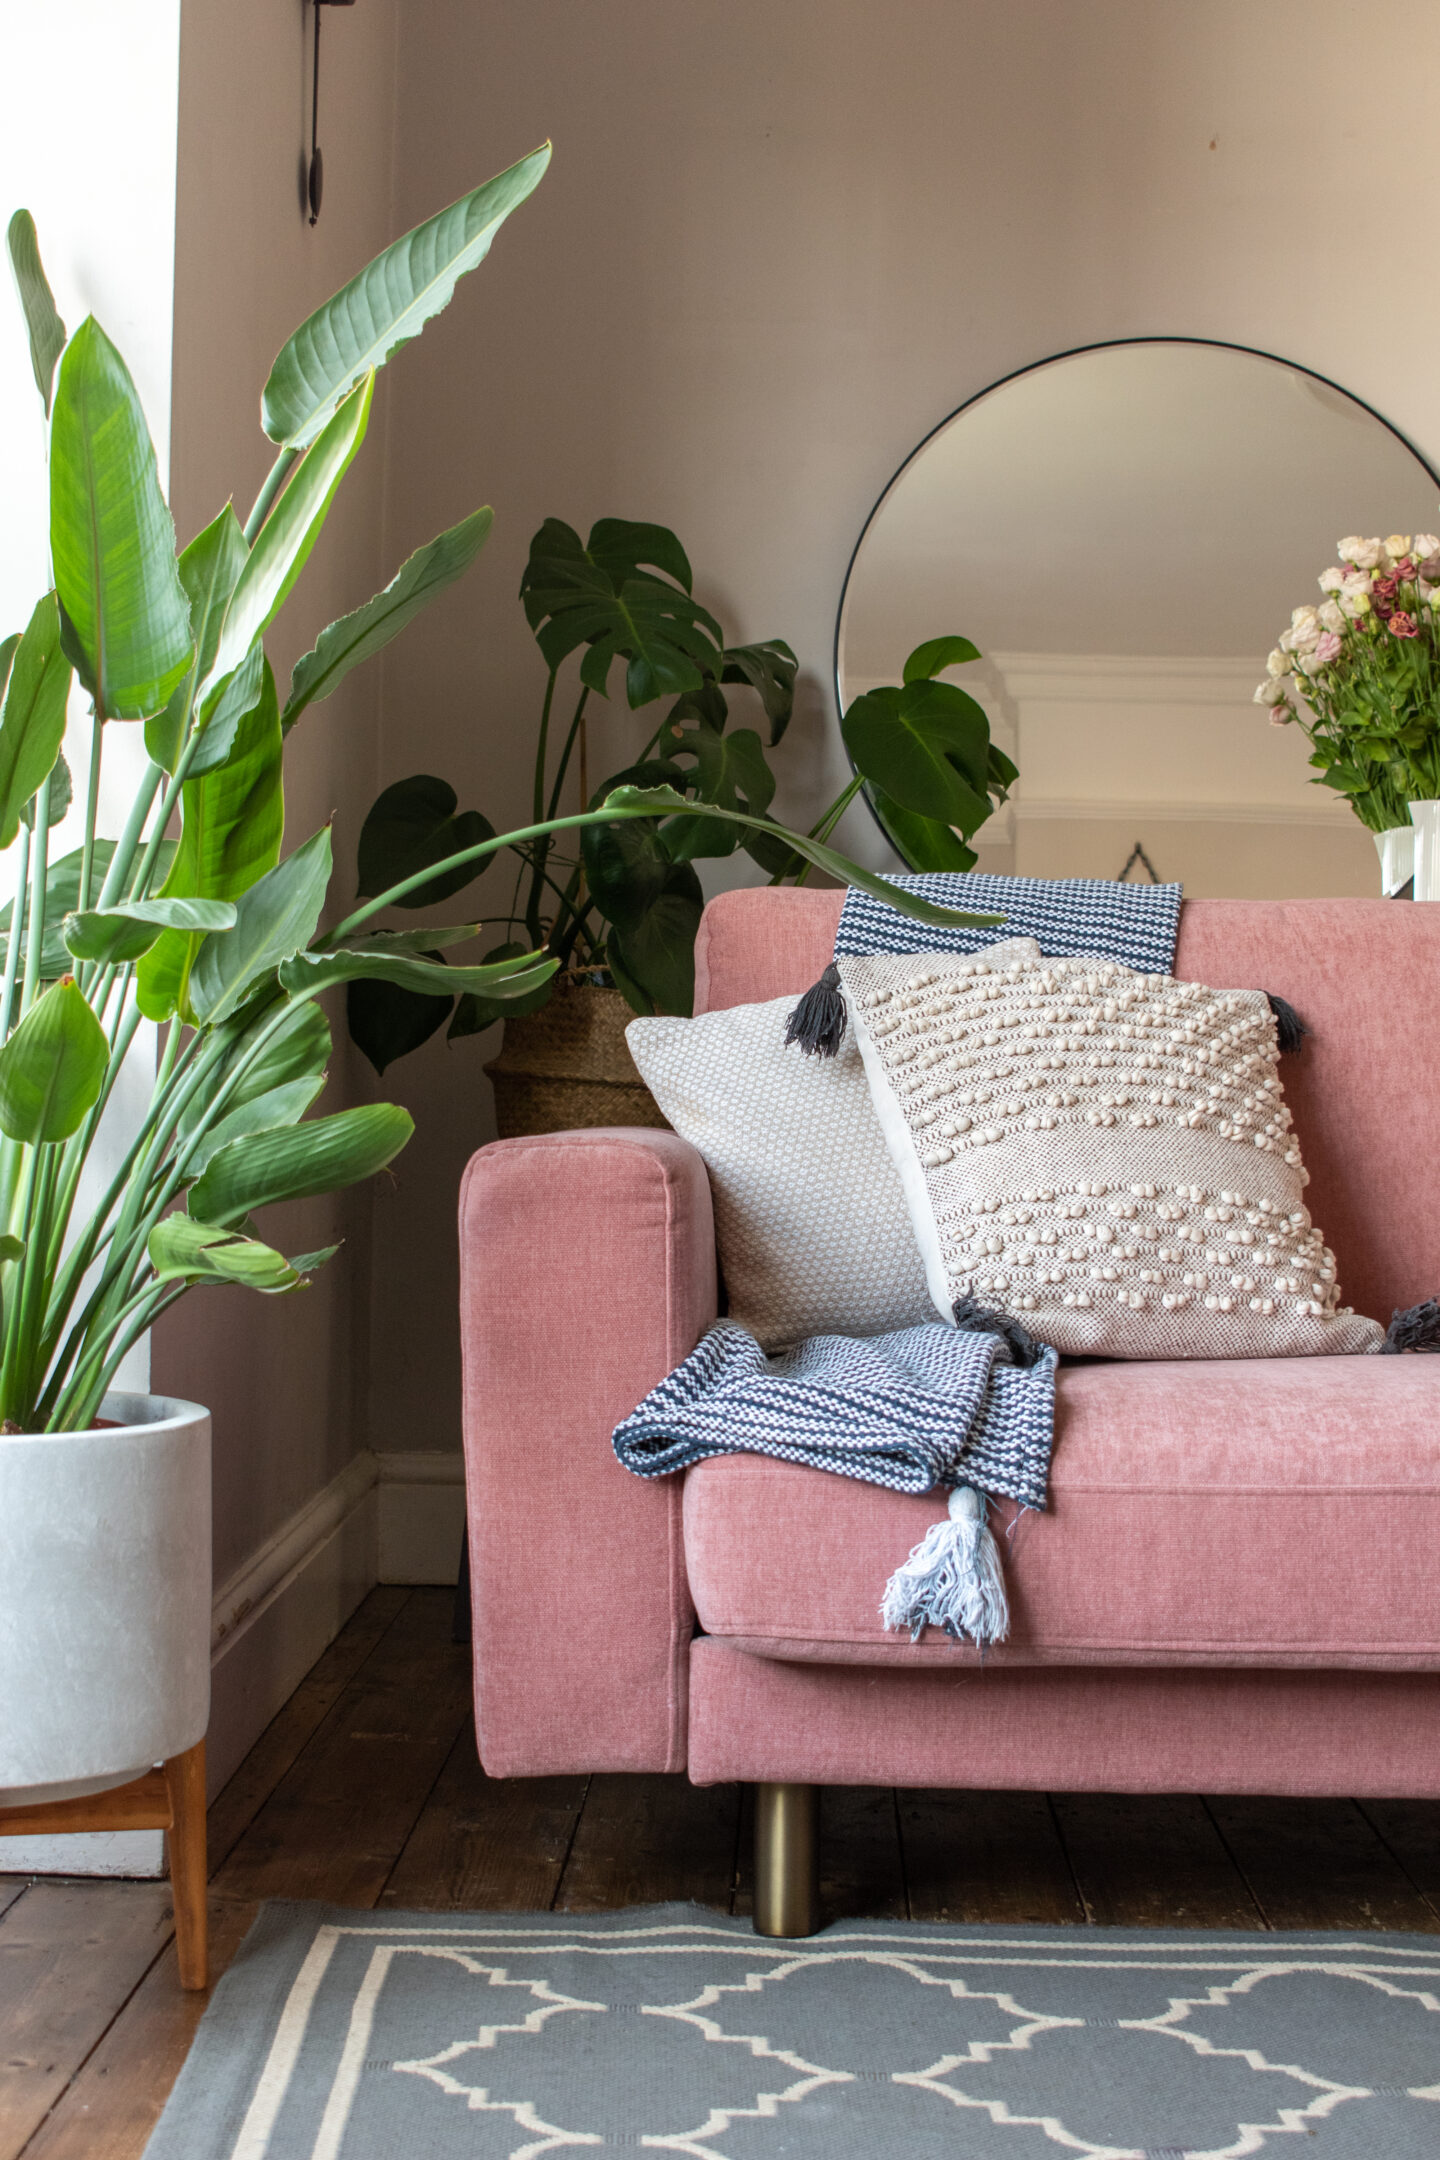 AD/Gifted Snug Sofa Review: The Launch of The Big Chill